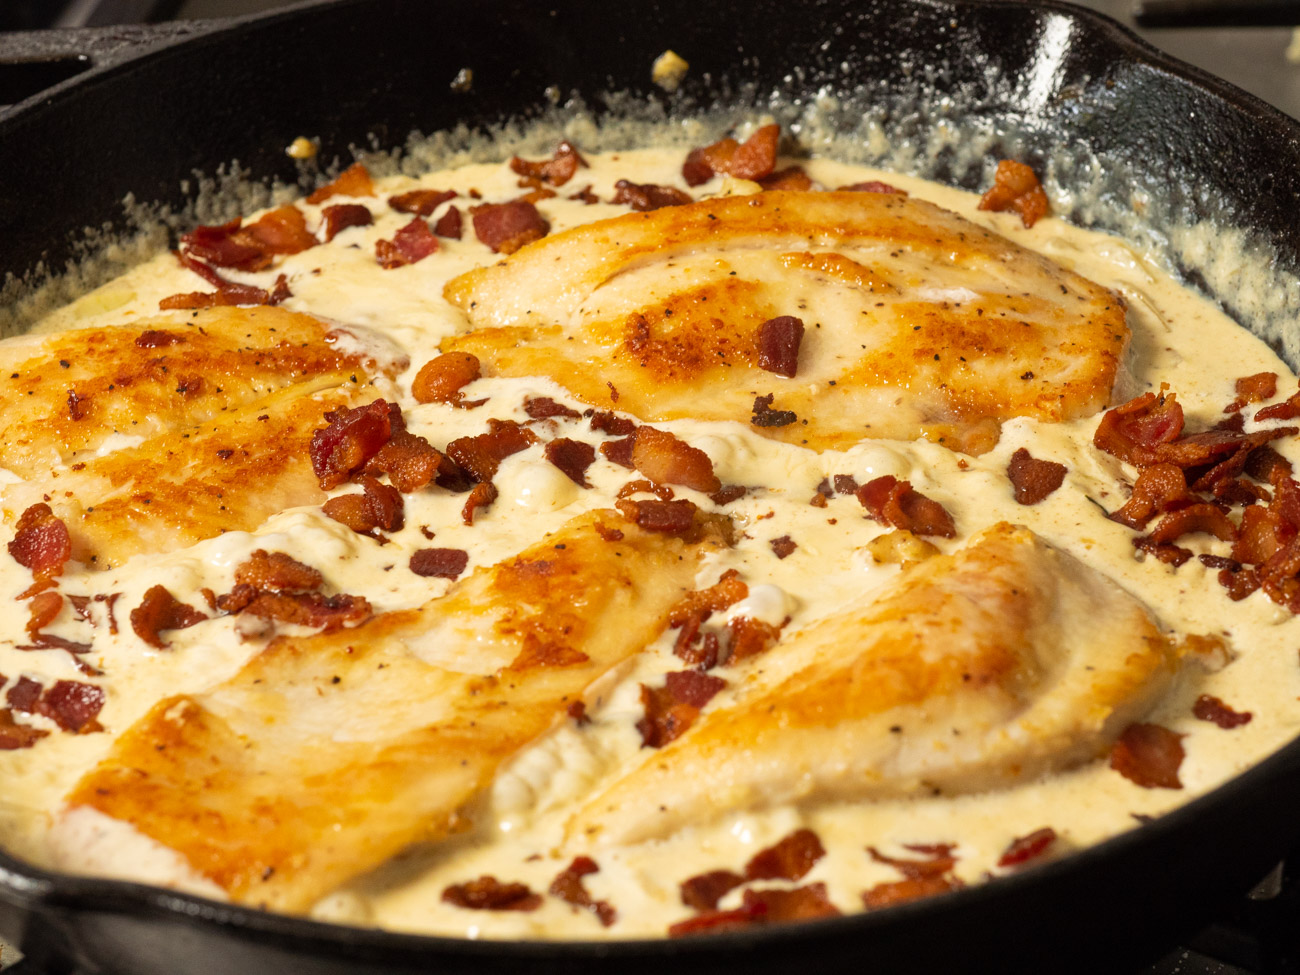 Add the chicken back into the pan and coat with sauce. Top each serving with the crispy bacon pieces. Serve over pasta.